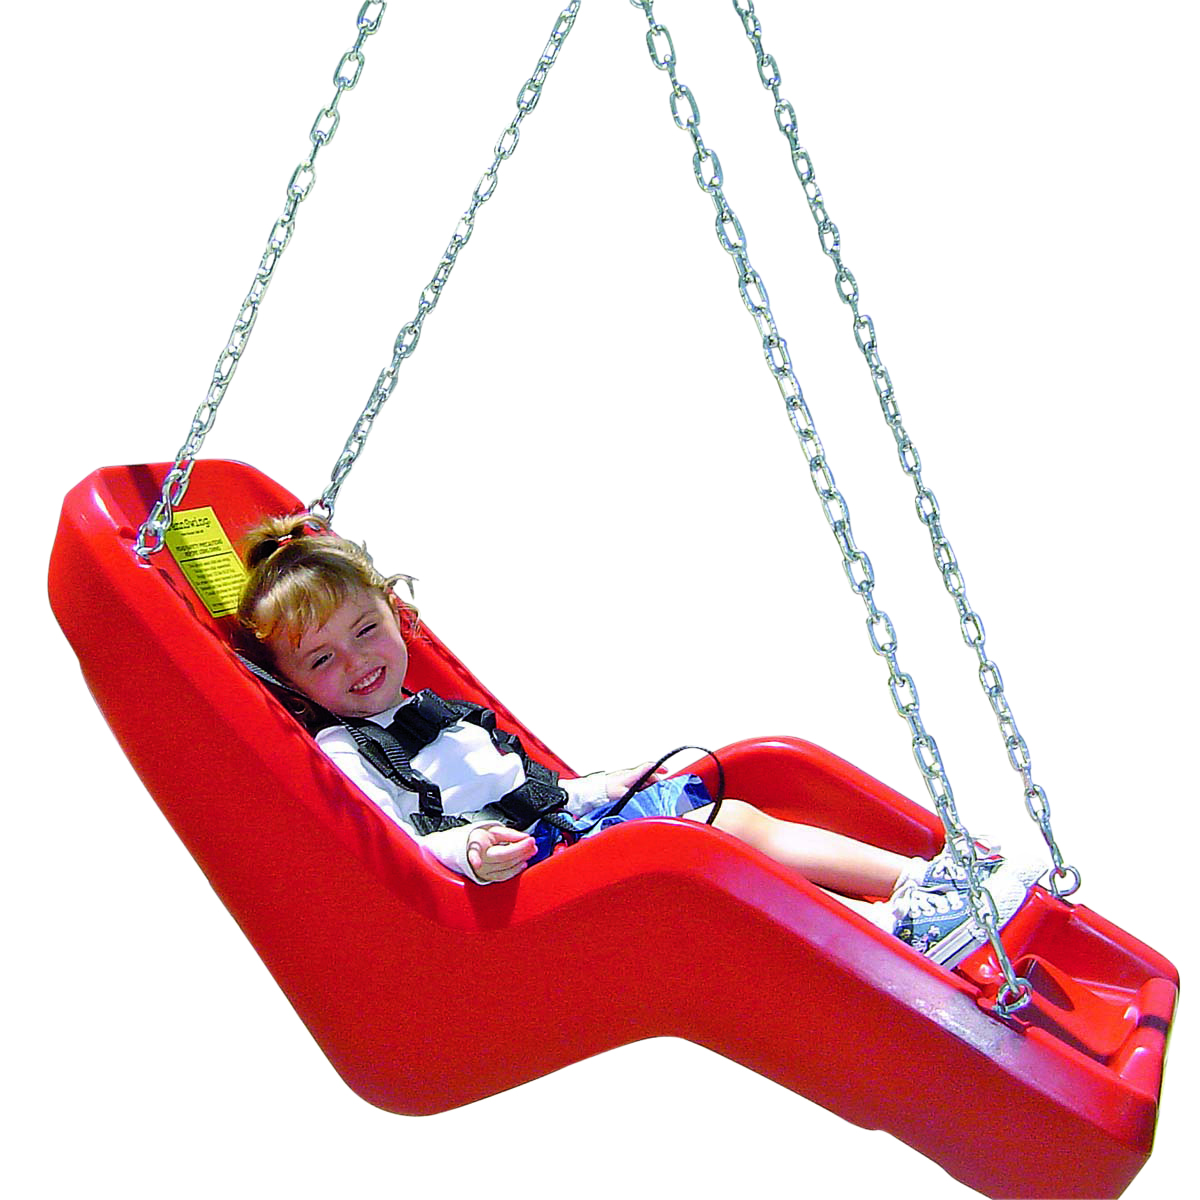 pediatric-swing-seats.jpg